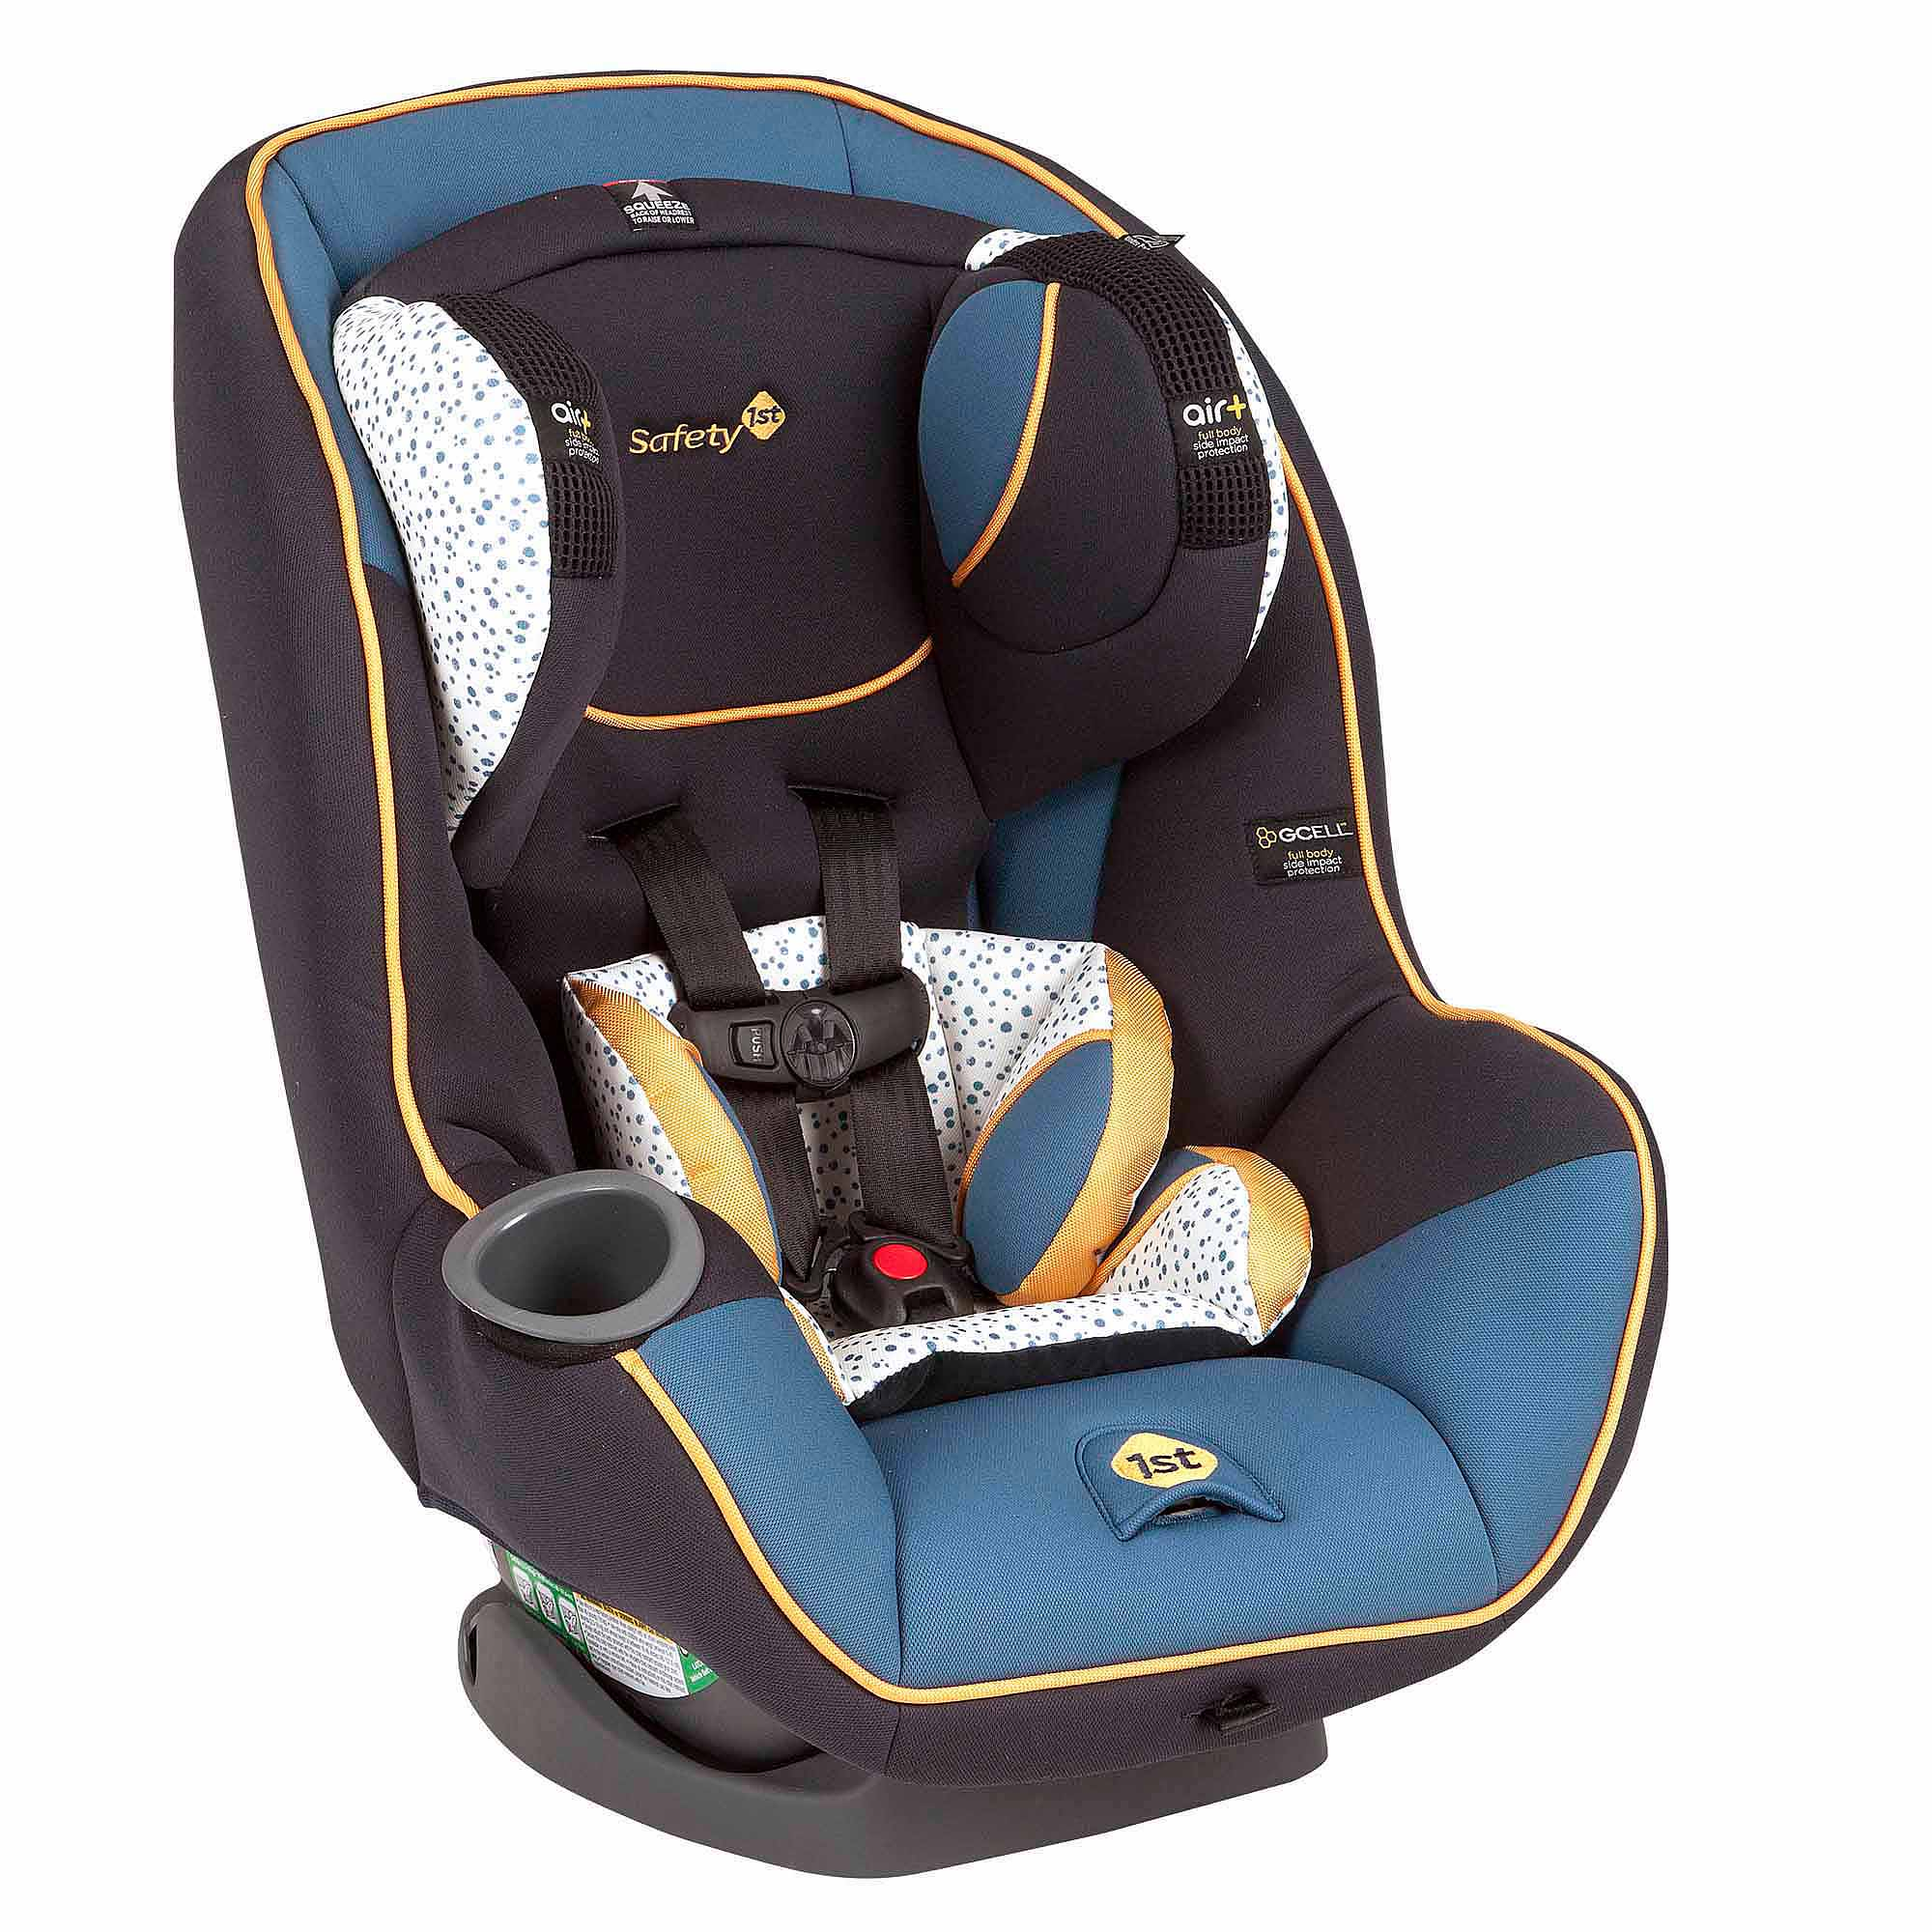 Safety 1st Advance Convertible Car Seat, SE 65 Air , Twist of Citrus